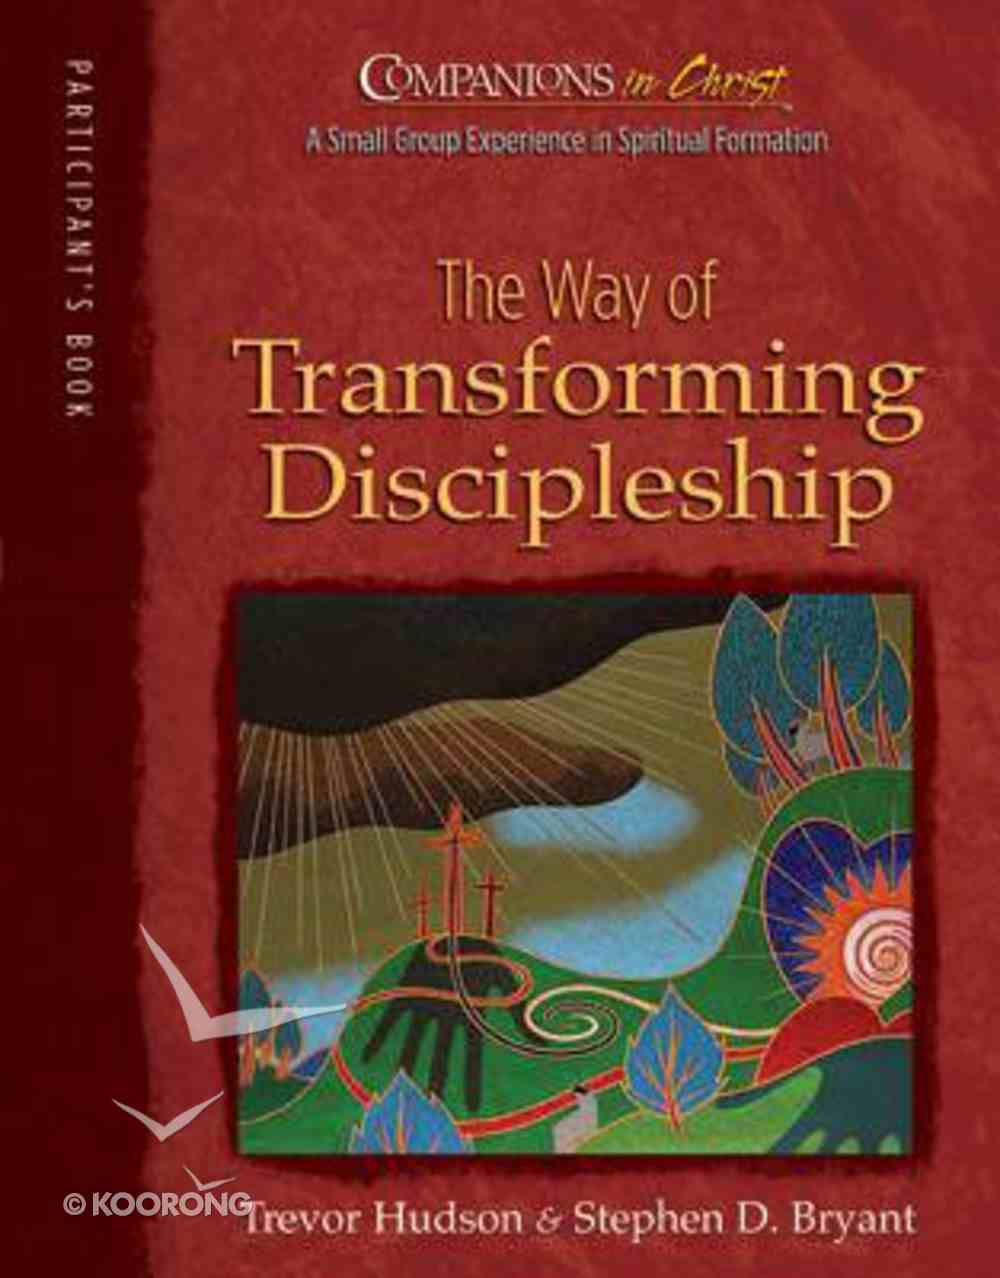 The Way of Transforming Discipleship (Participant Book) (Companions In Christ Series) Paperback